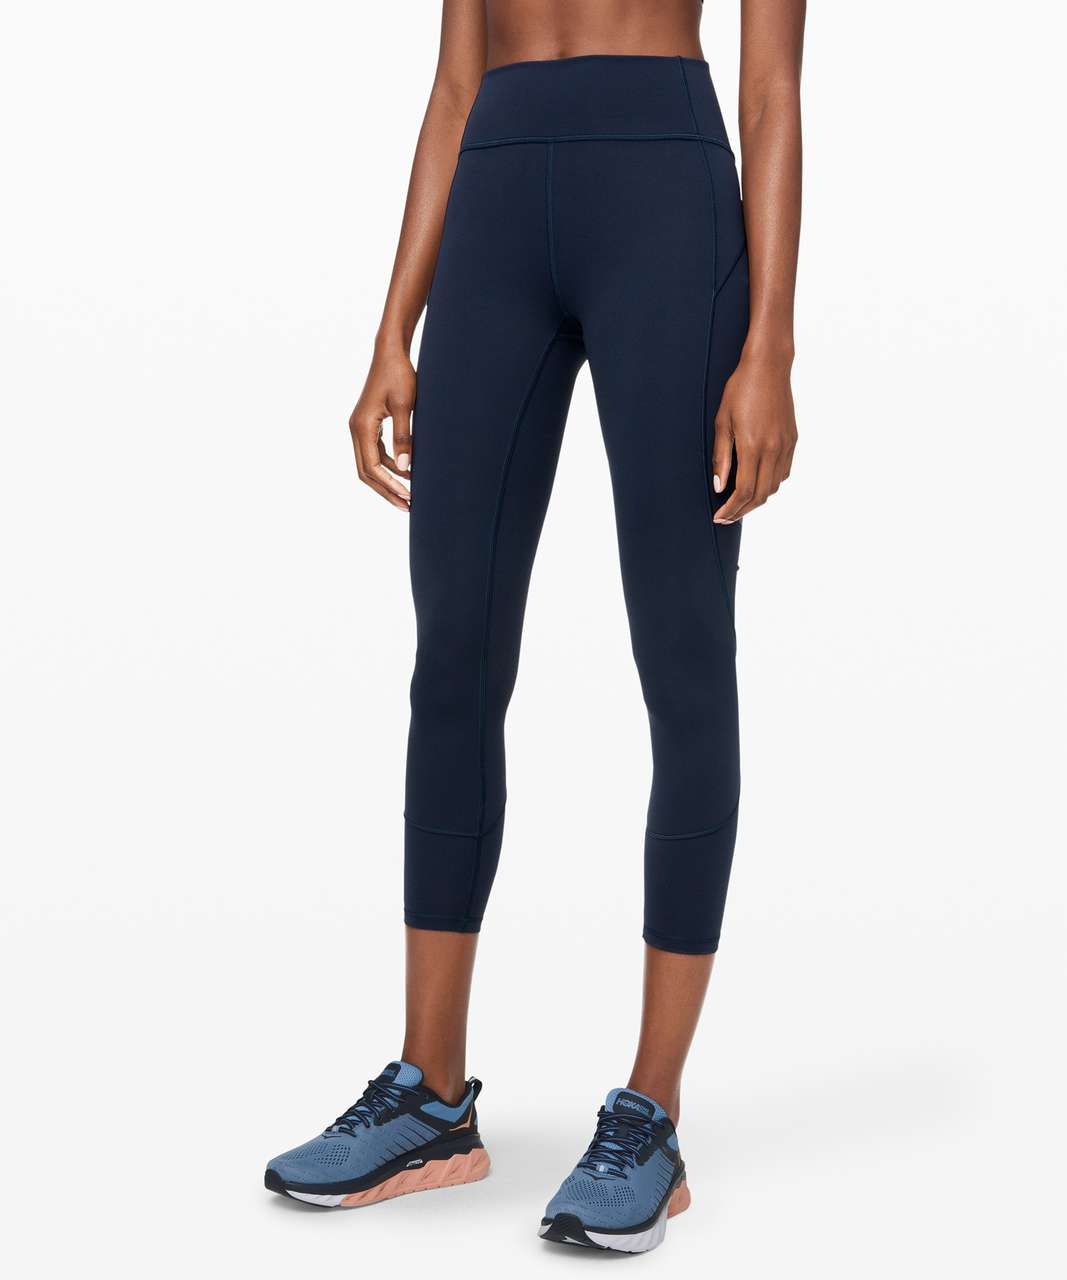 "Lululemon In Movement Tight 25"" *Everlux - True Navy"